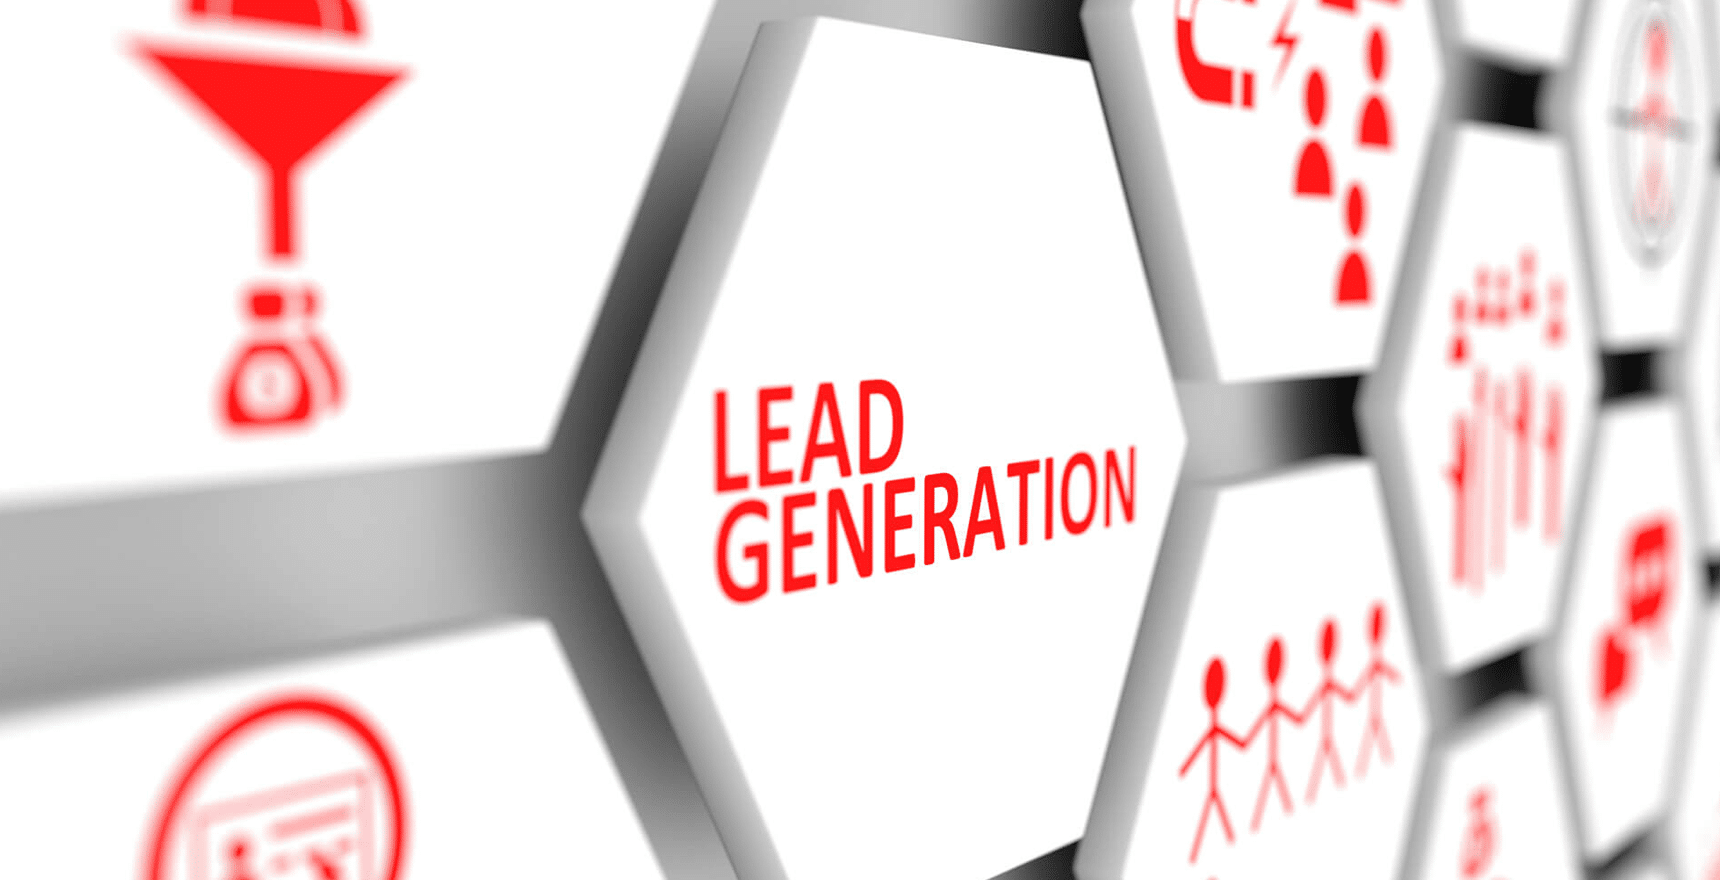 law firm lead generation services